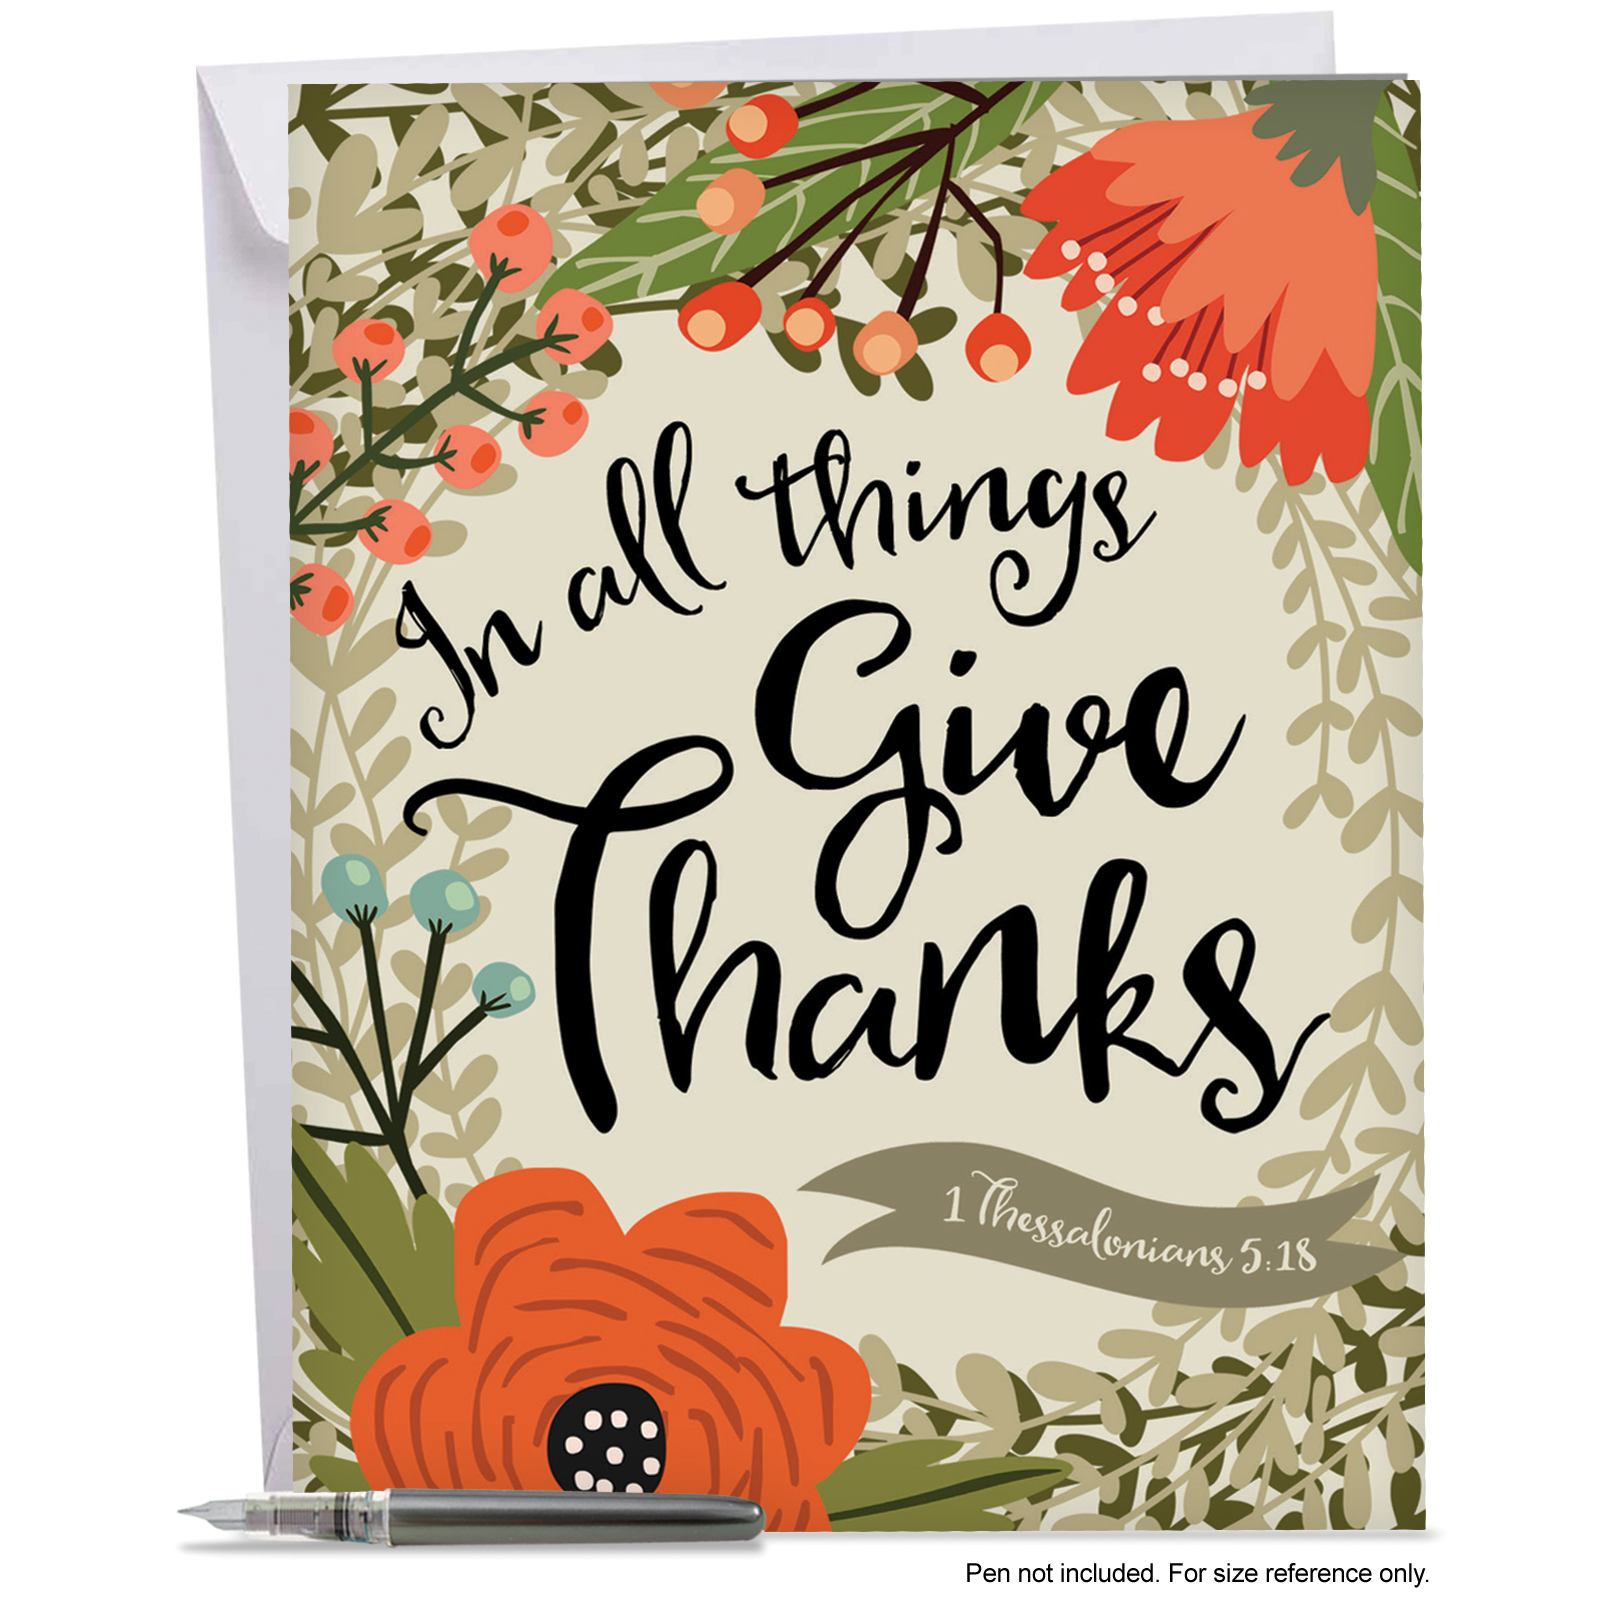 j6634atyg jumbo thank you card 'blessings' featuring